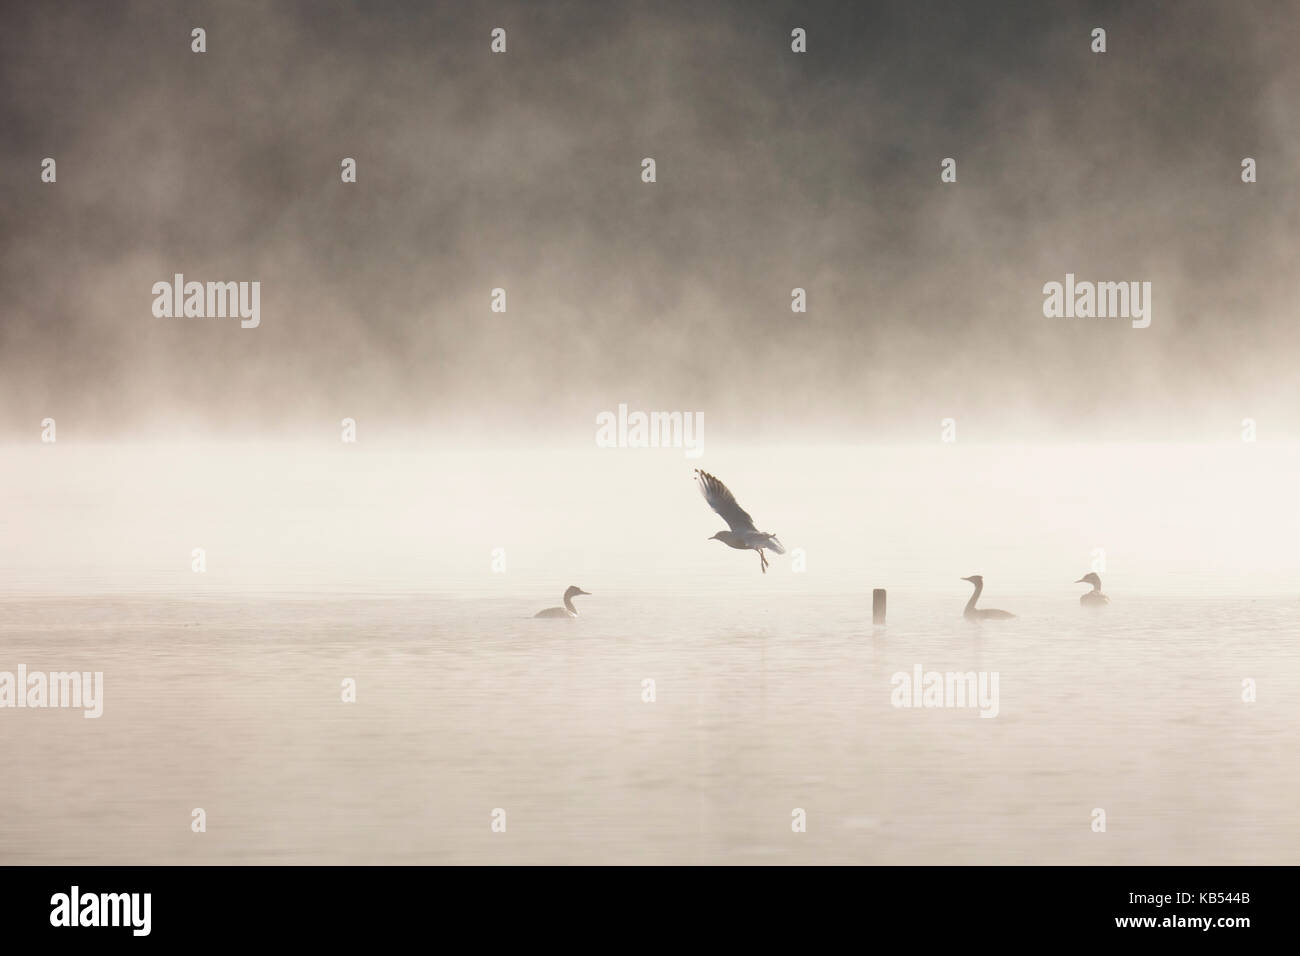 A black-headed gull (Larus ridibundus) leaves its perch on a post in a misty lake when approached by great crested - Stock Image